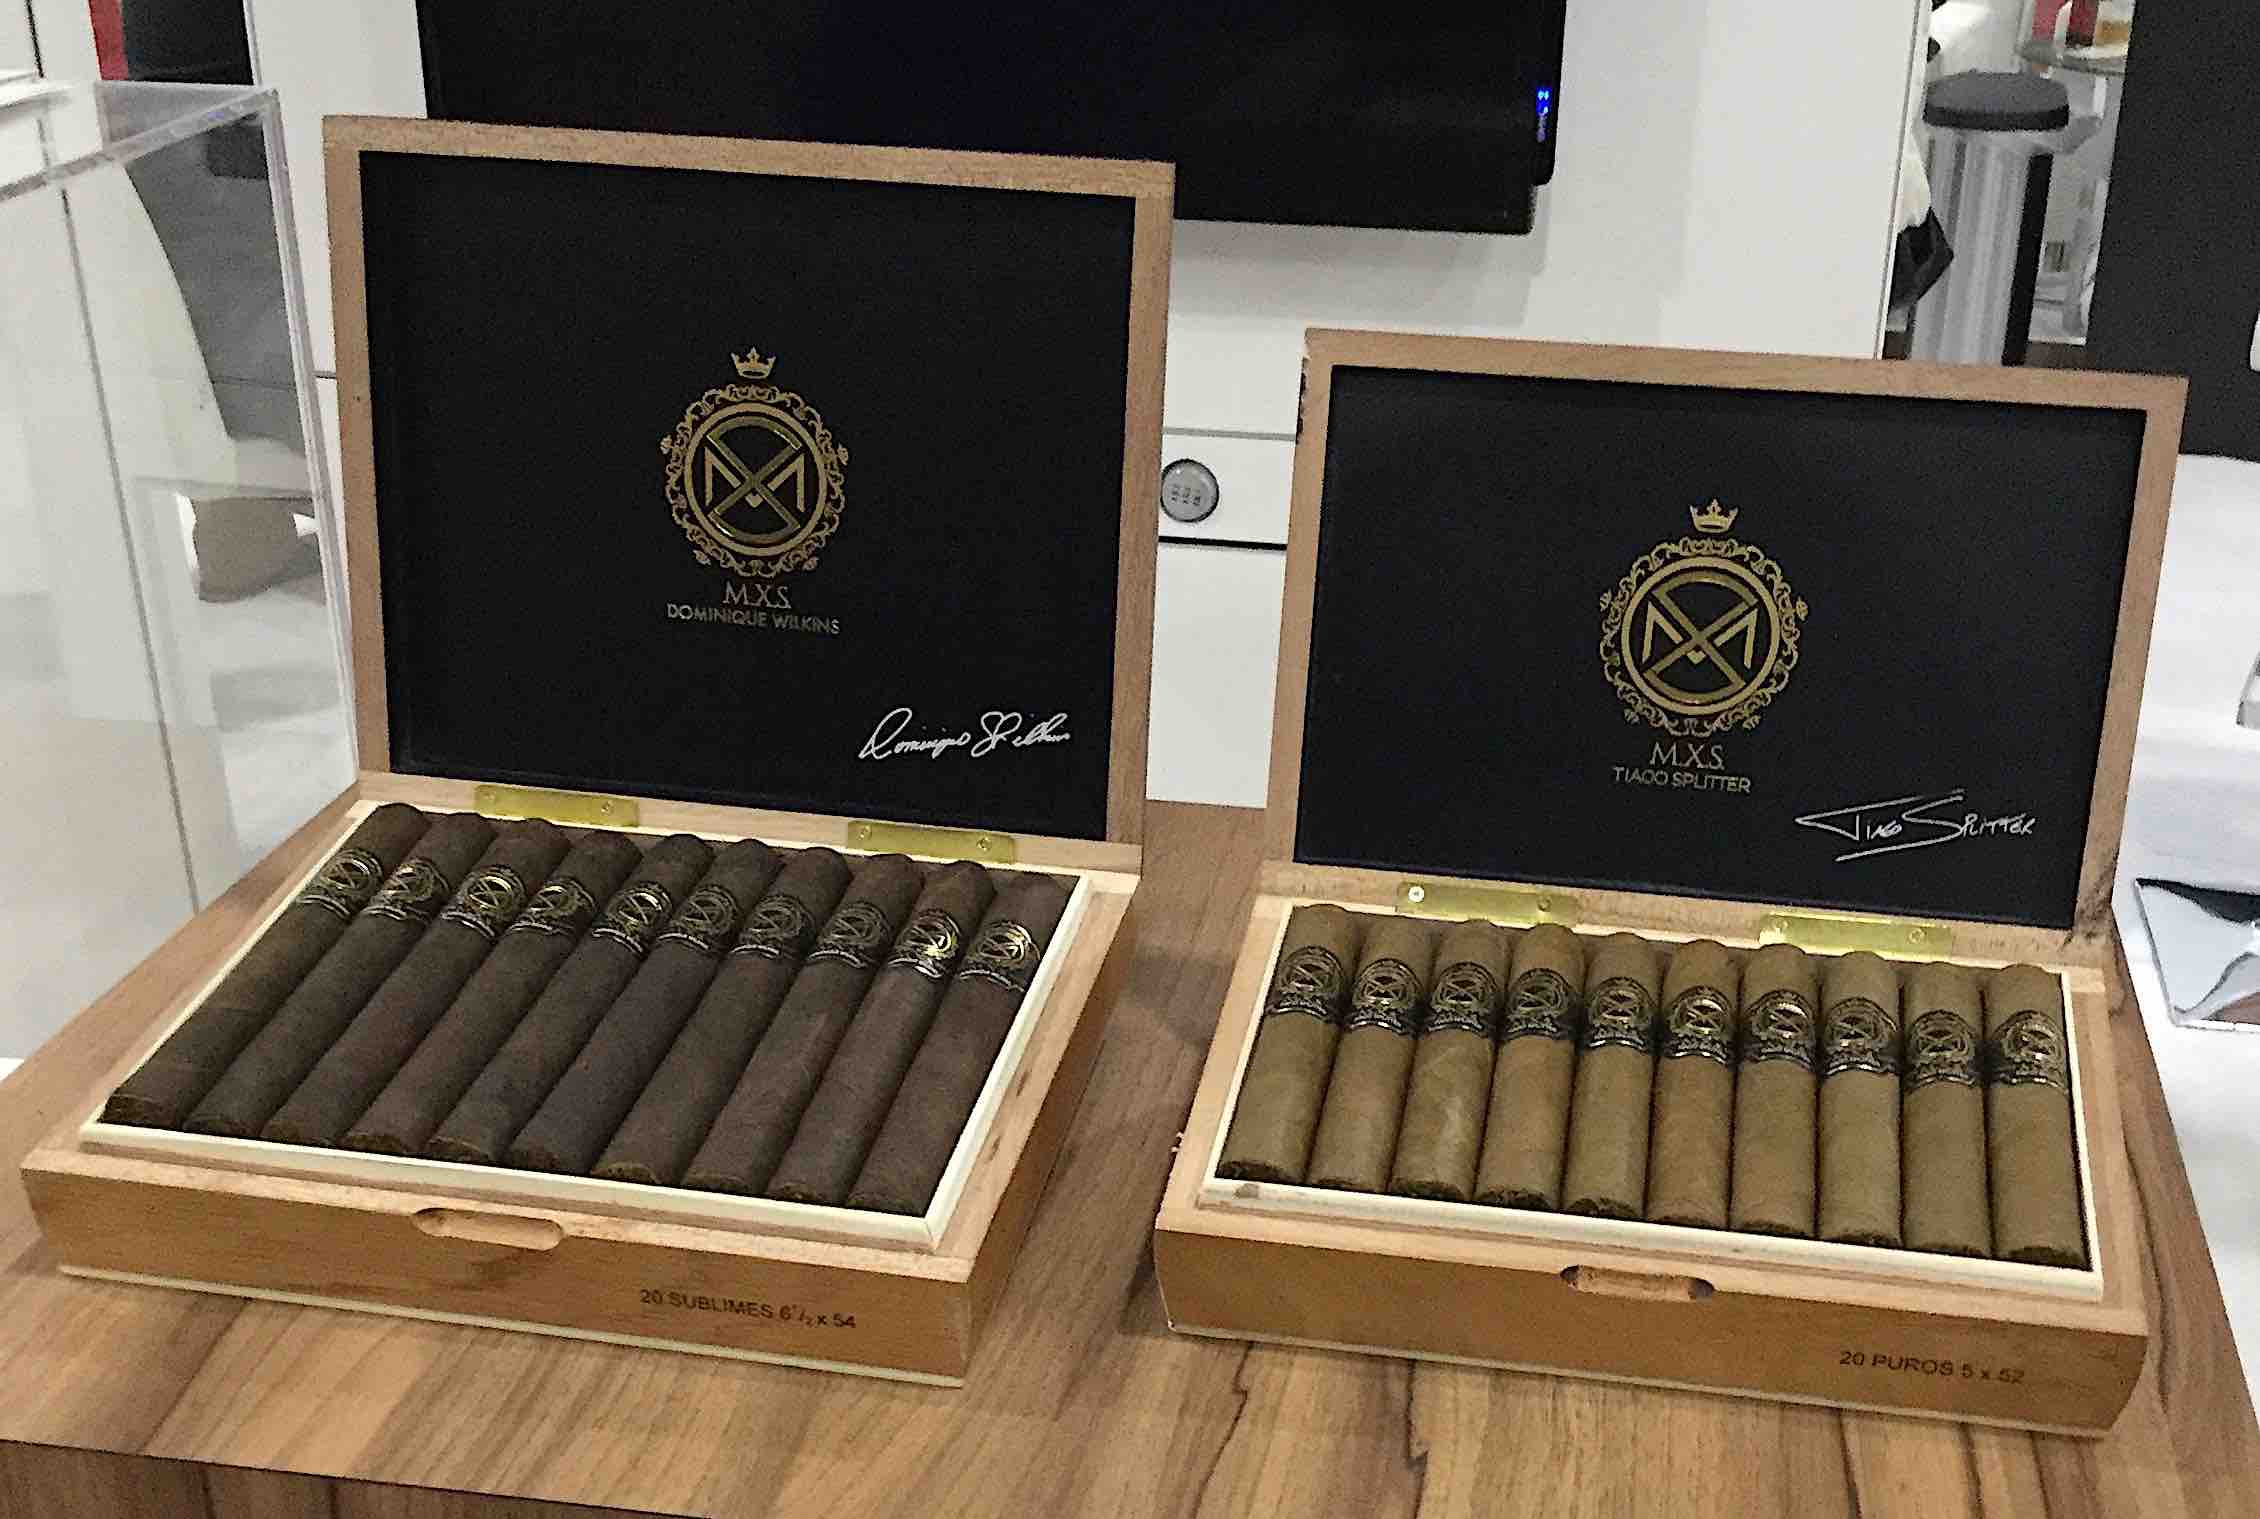 Cigar News: A.C.E. Prime Launches M.X.S. at 2019 IPCPR